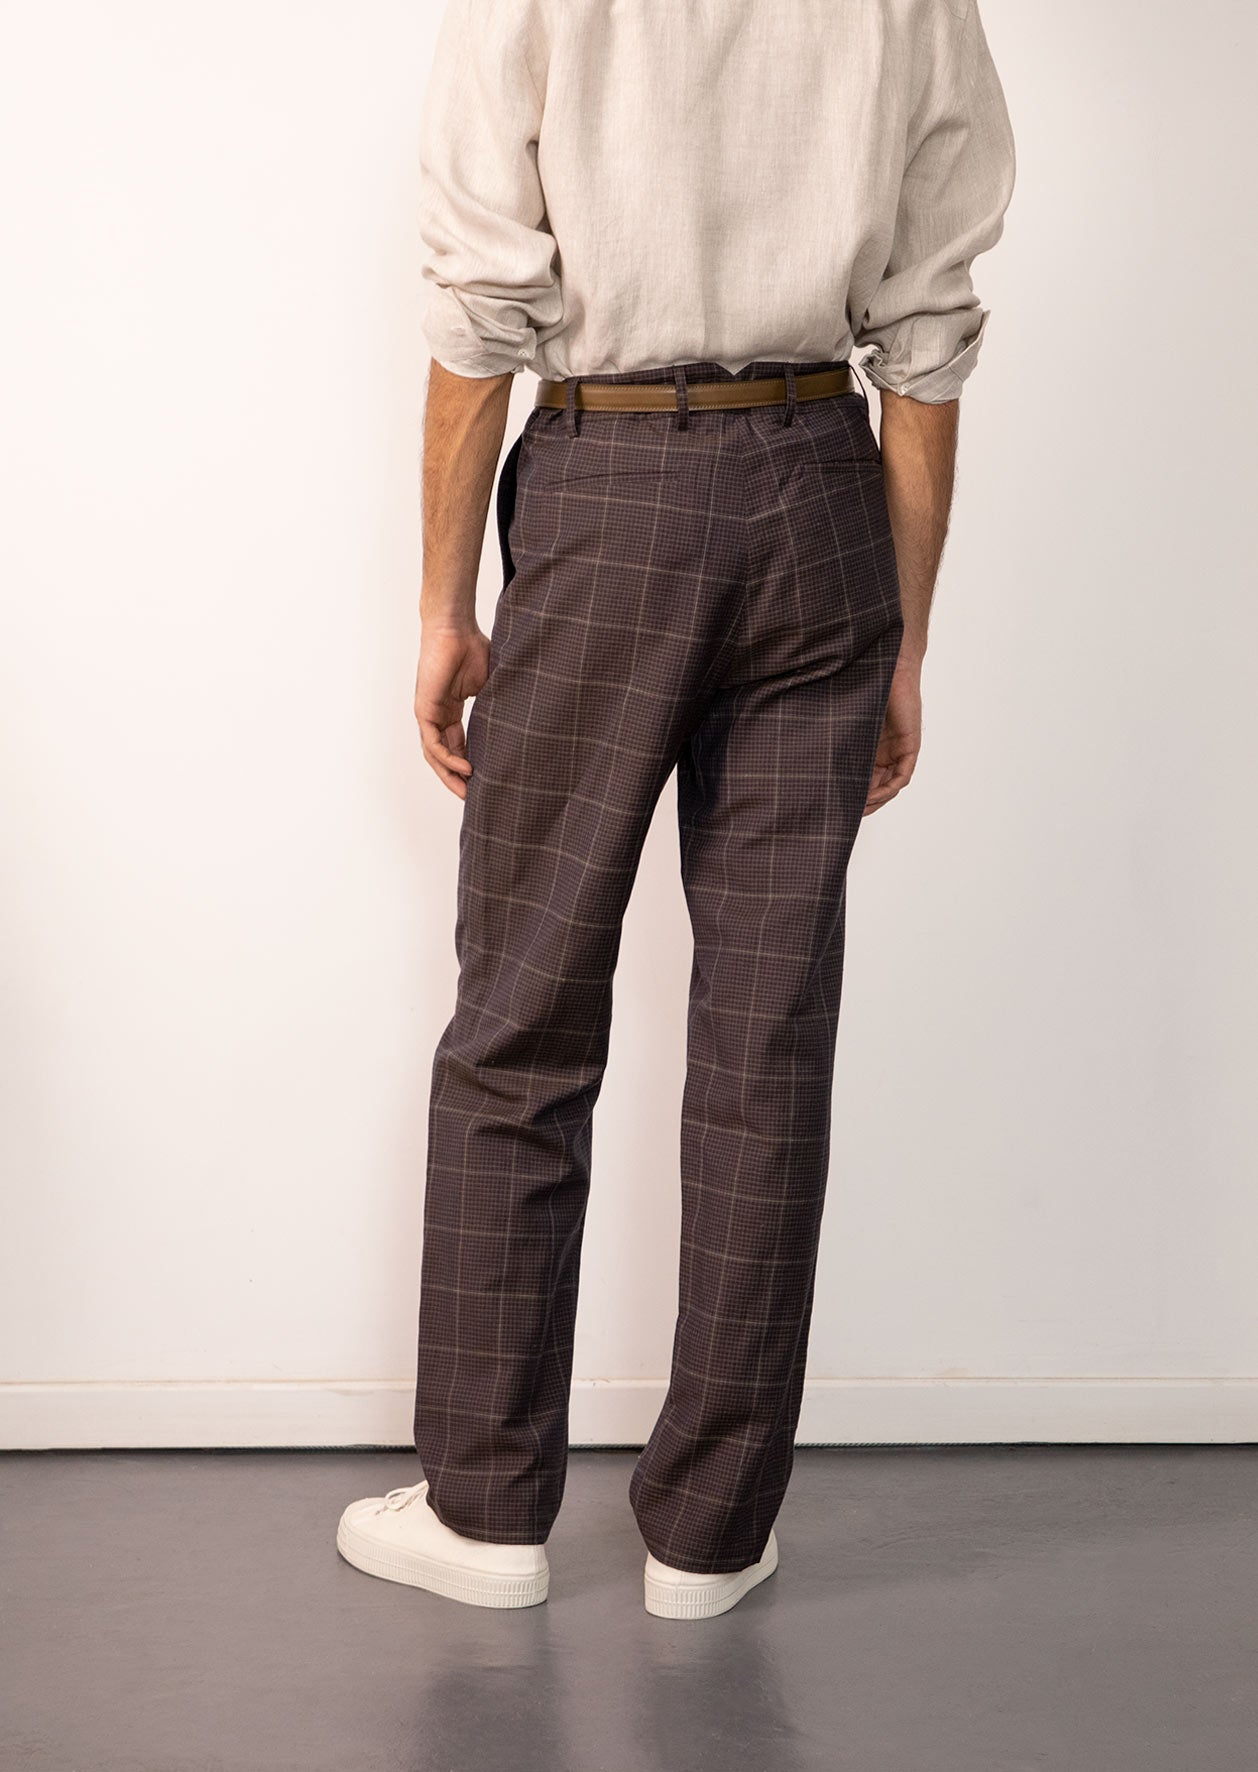 De Bonne Facture - Two pleat large trousers - Washed wool & linen - Dark brown checks